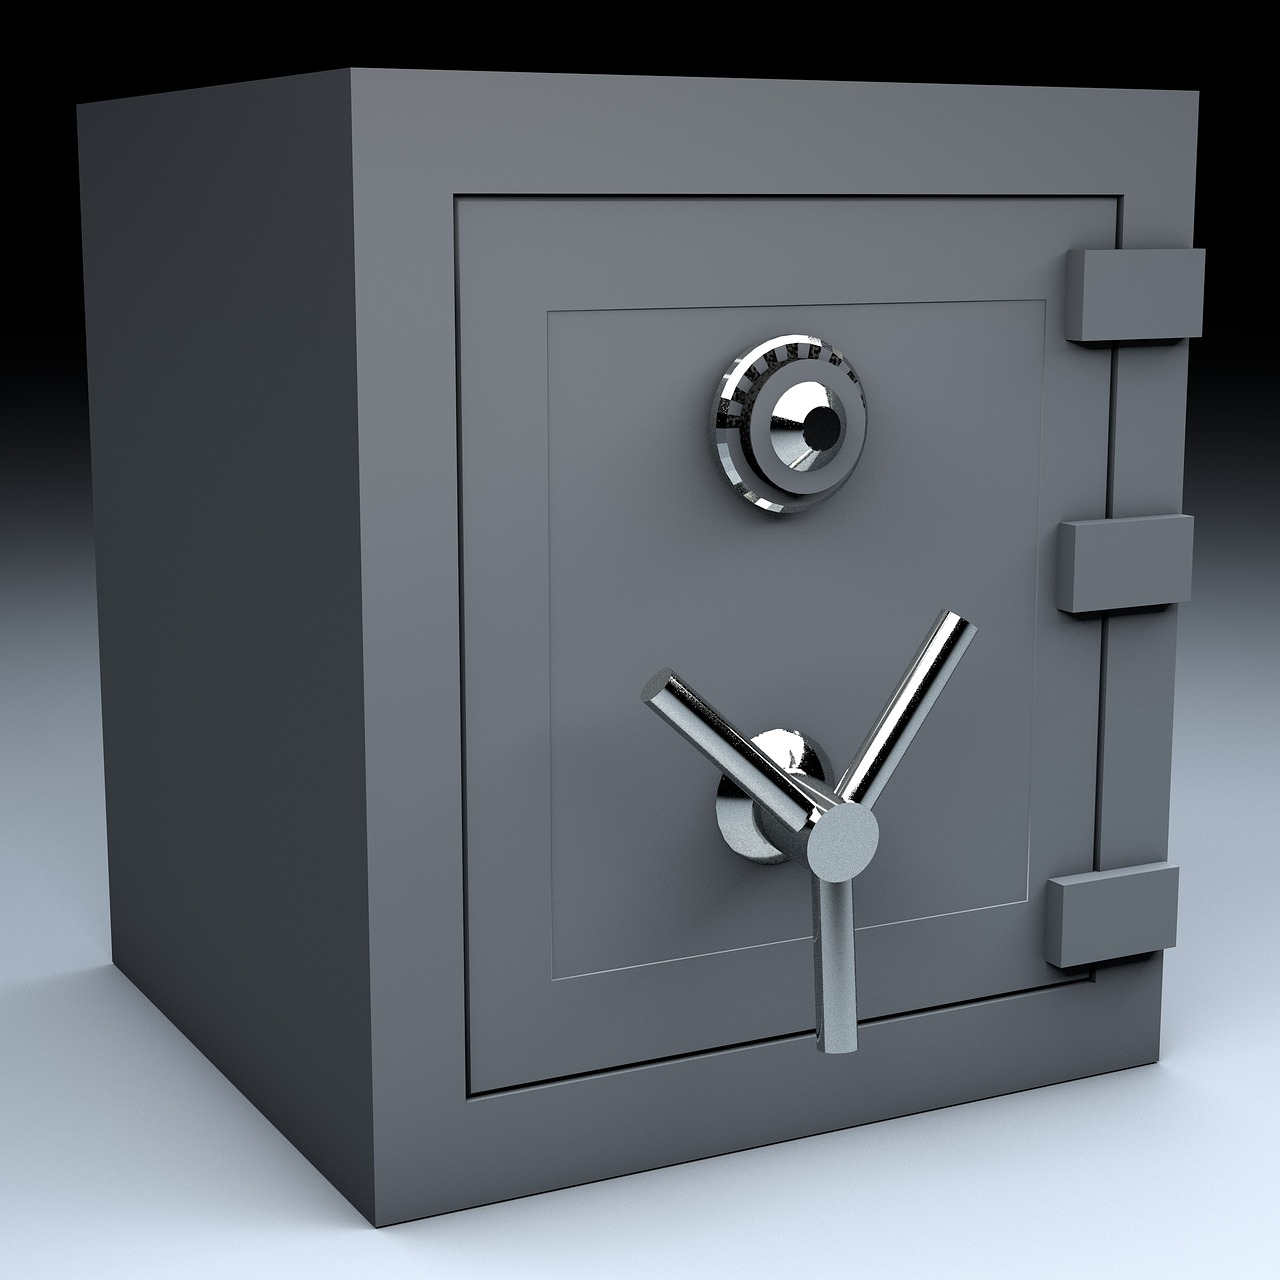 Storing your valuables safely!